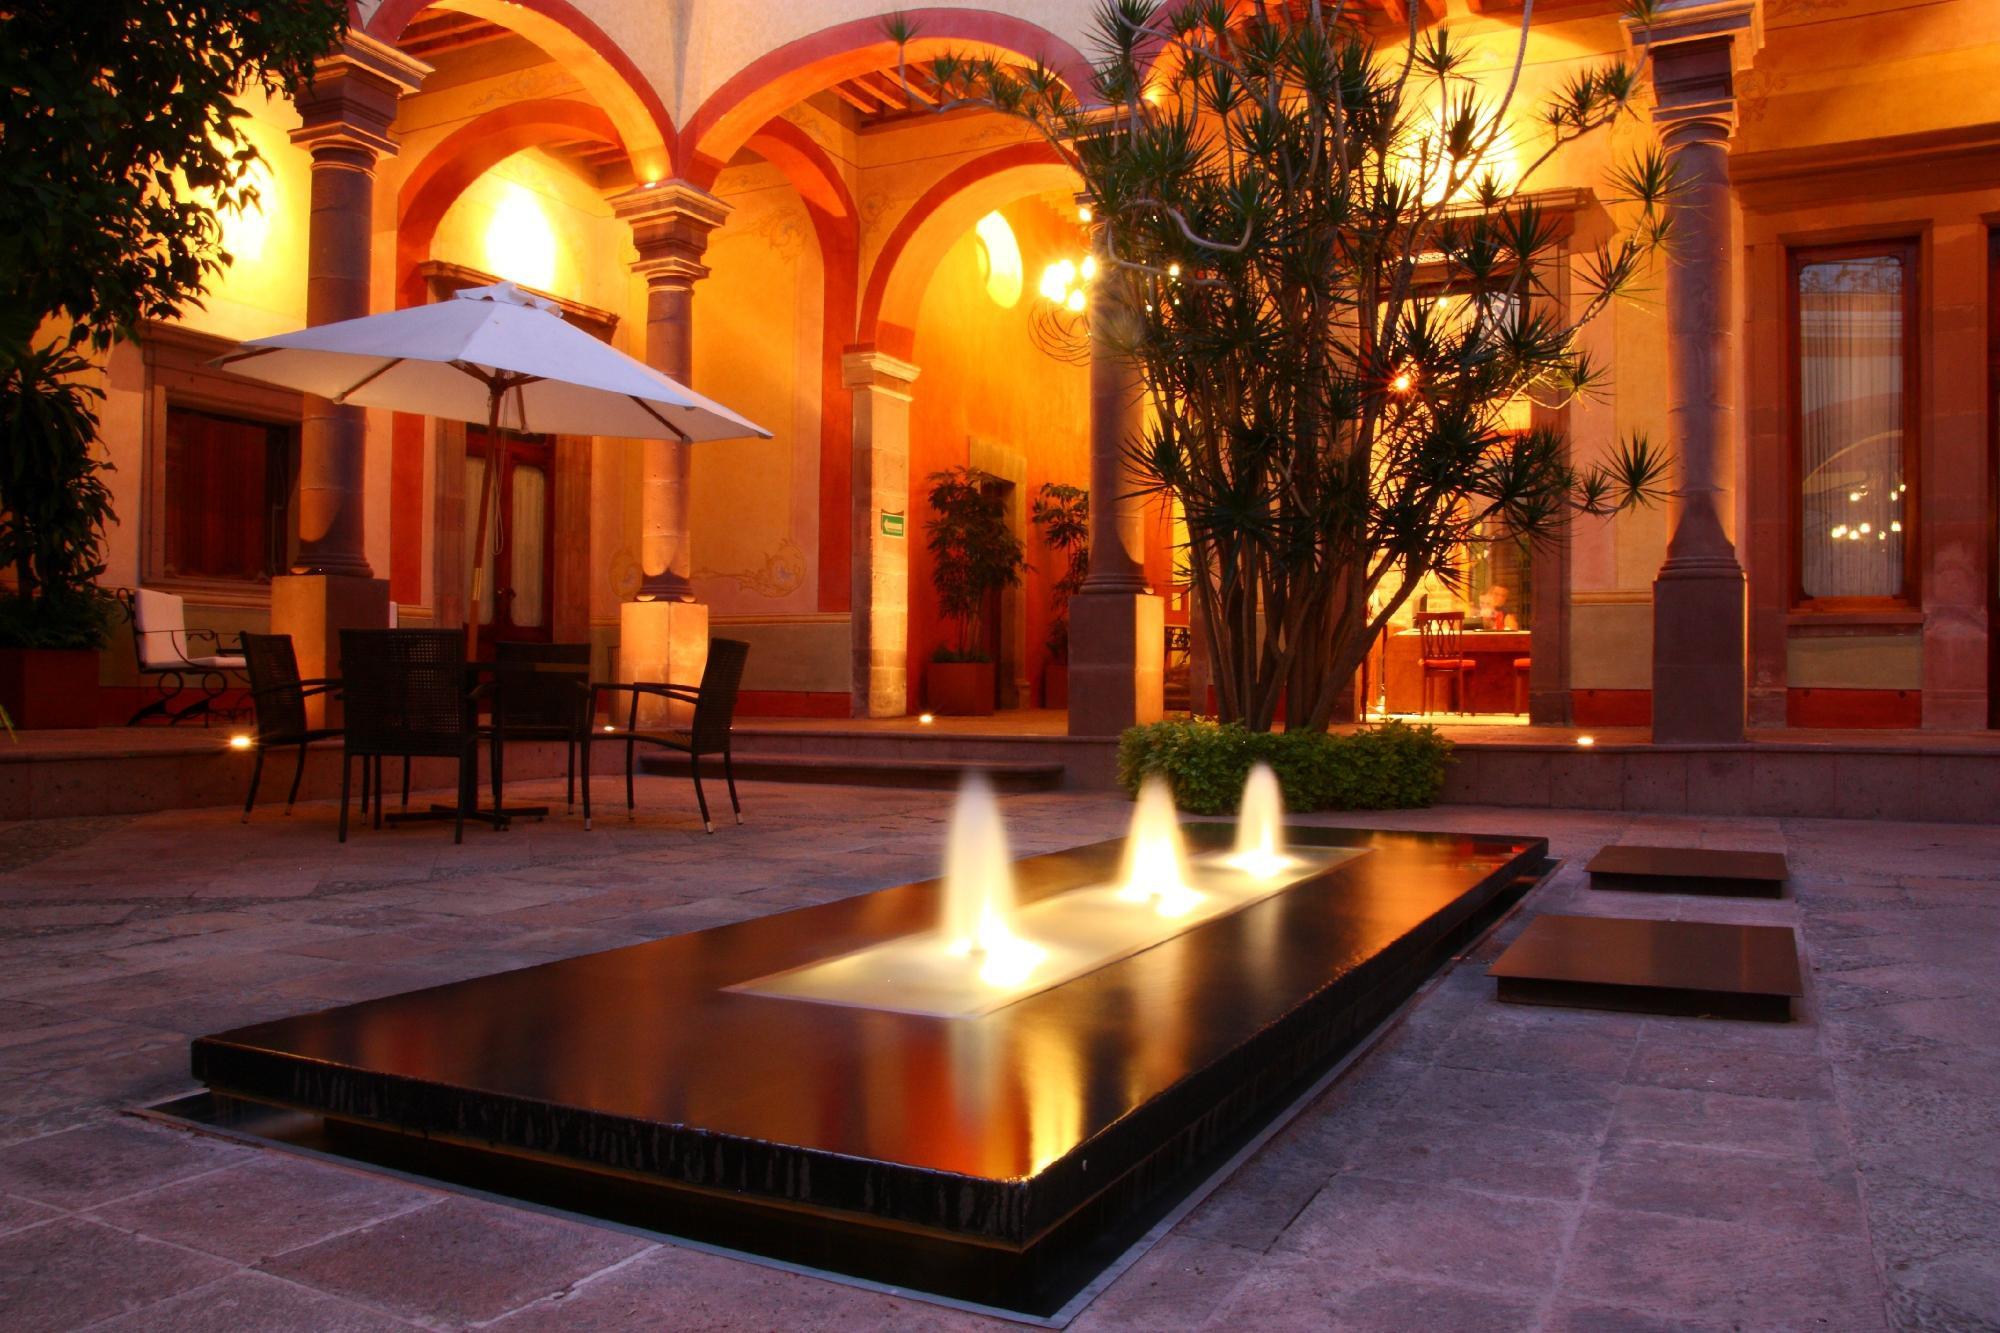 Casona de la Republica Hotel Boutique